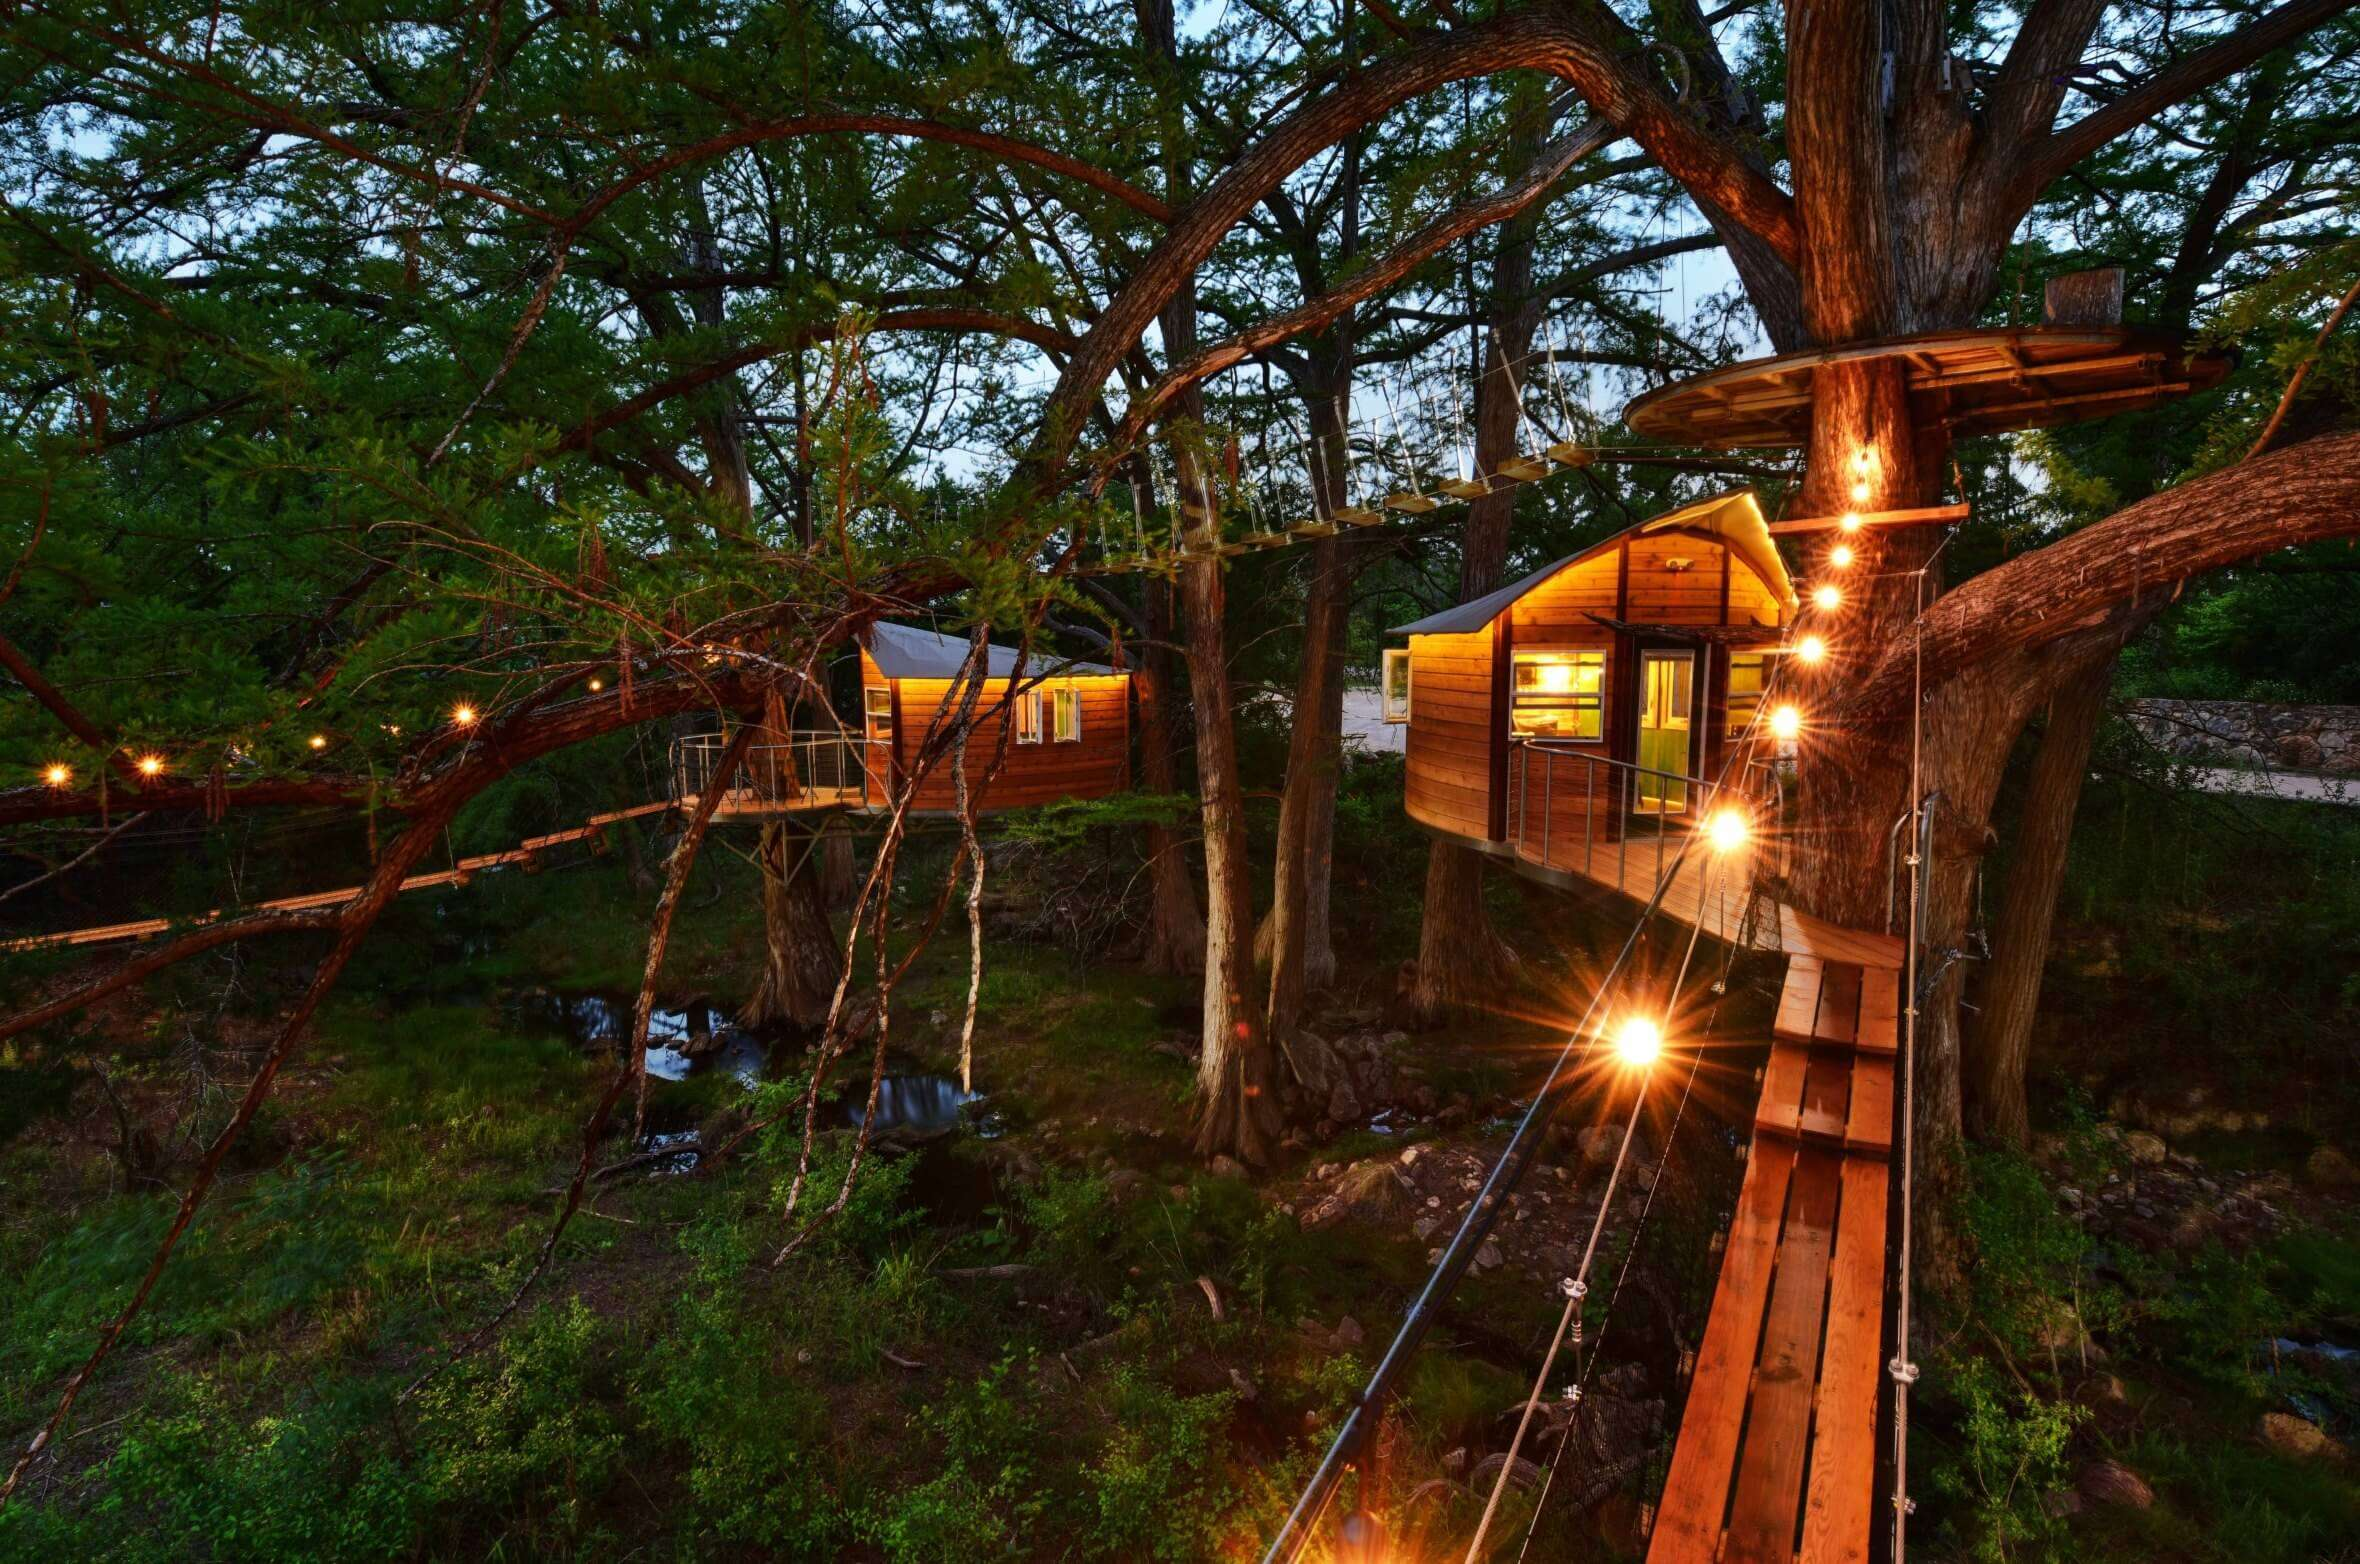 A view of beautiful treehouses in Cypress Valley in Texas